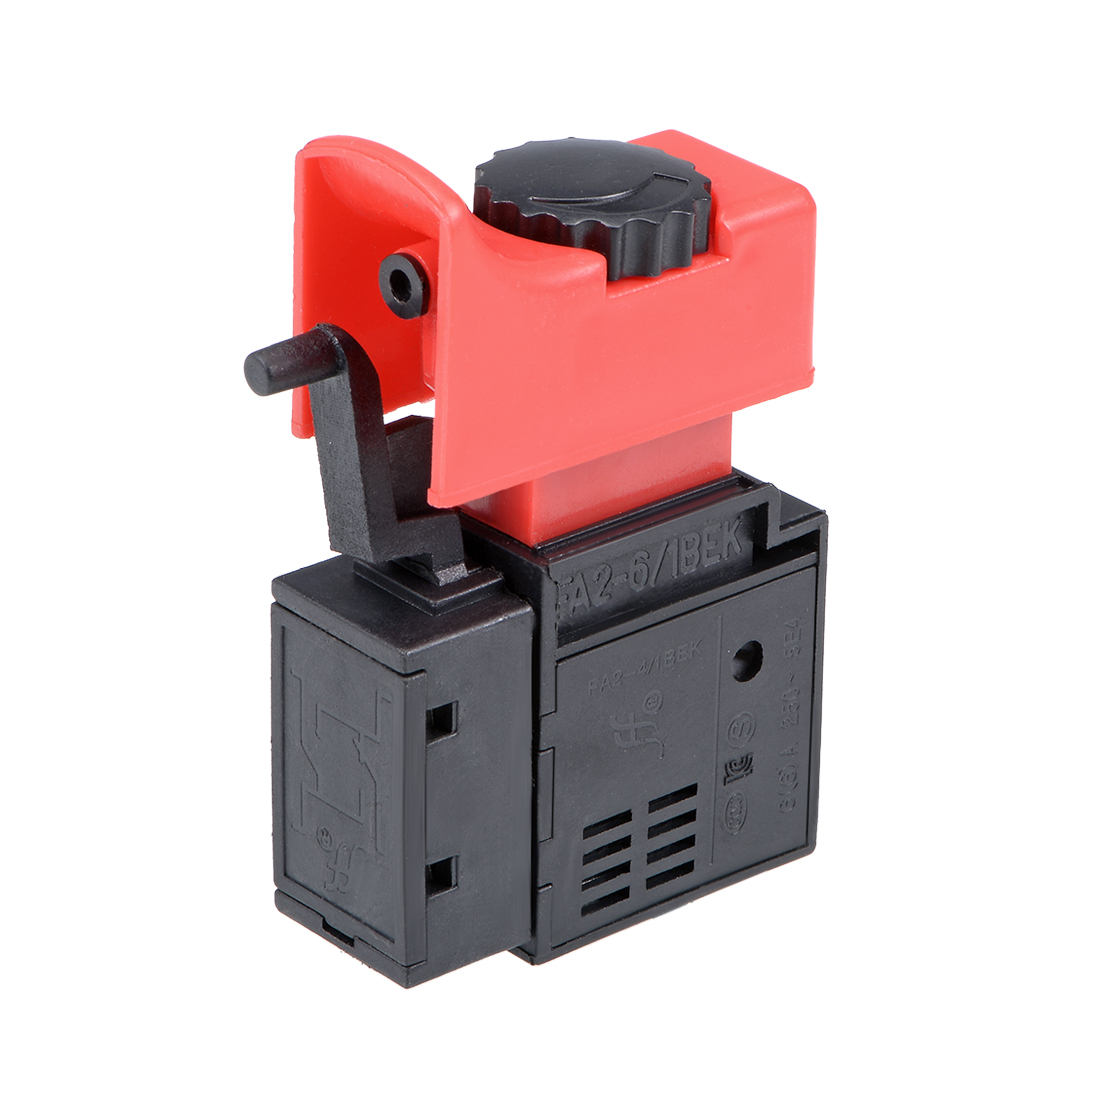 Trigger Switch FA2-6/IBEK Electric Drill Hammer 250V/6A Tool Power Speed Control Push Button Switch - image 4 of 5